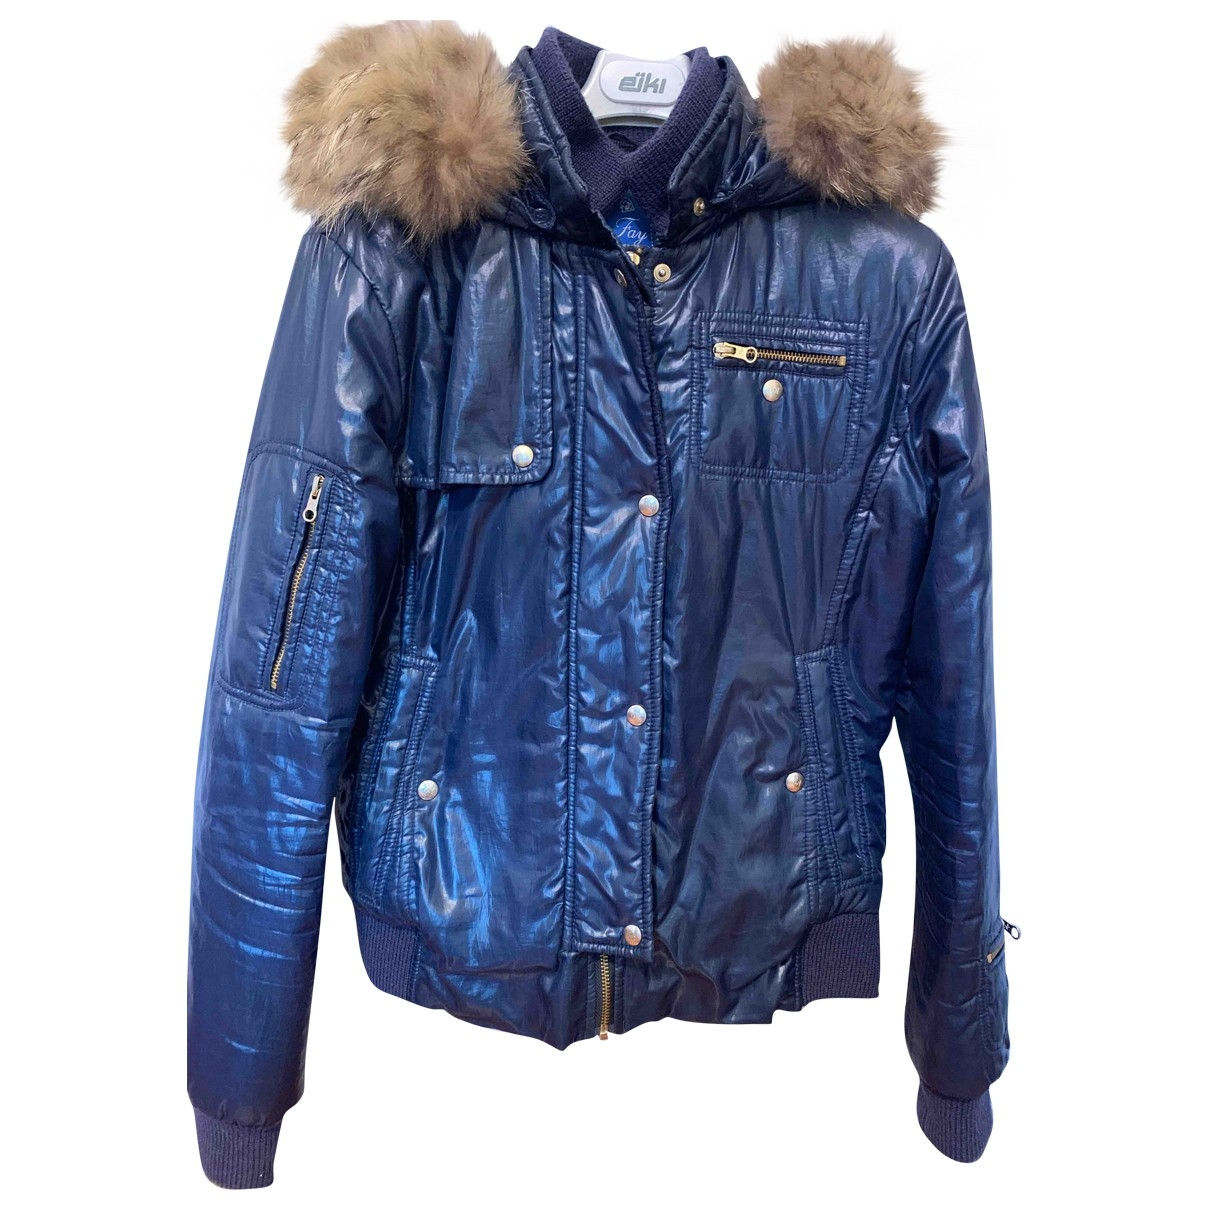 Fay \N Blue jacket & coat for Kids 14 years - S UK